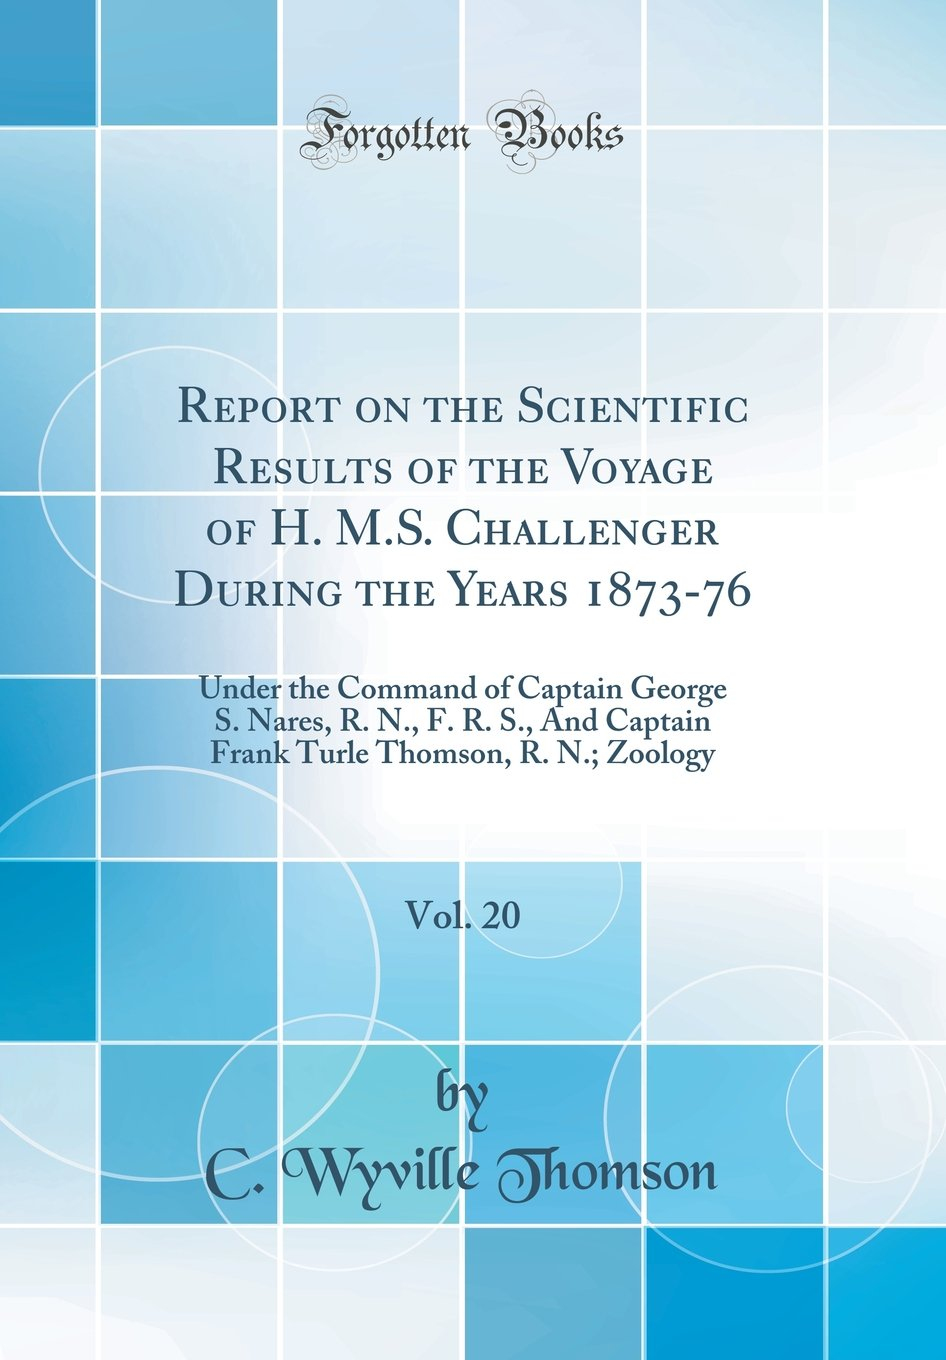 Report on the Scientific Results of the Voyage of H. M.S. Challenger During the Years 1873-76, Vol. 20: Under the Command of Captain George S. Nares, ... Thomson, R. N.; Zoology (Classic Reprint) pdf